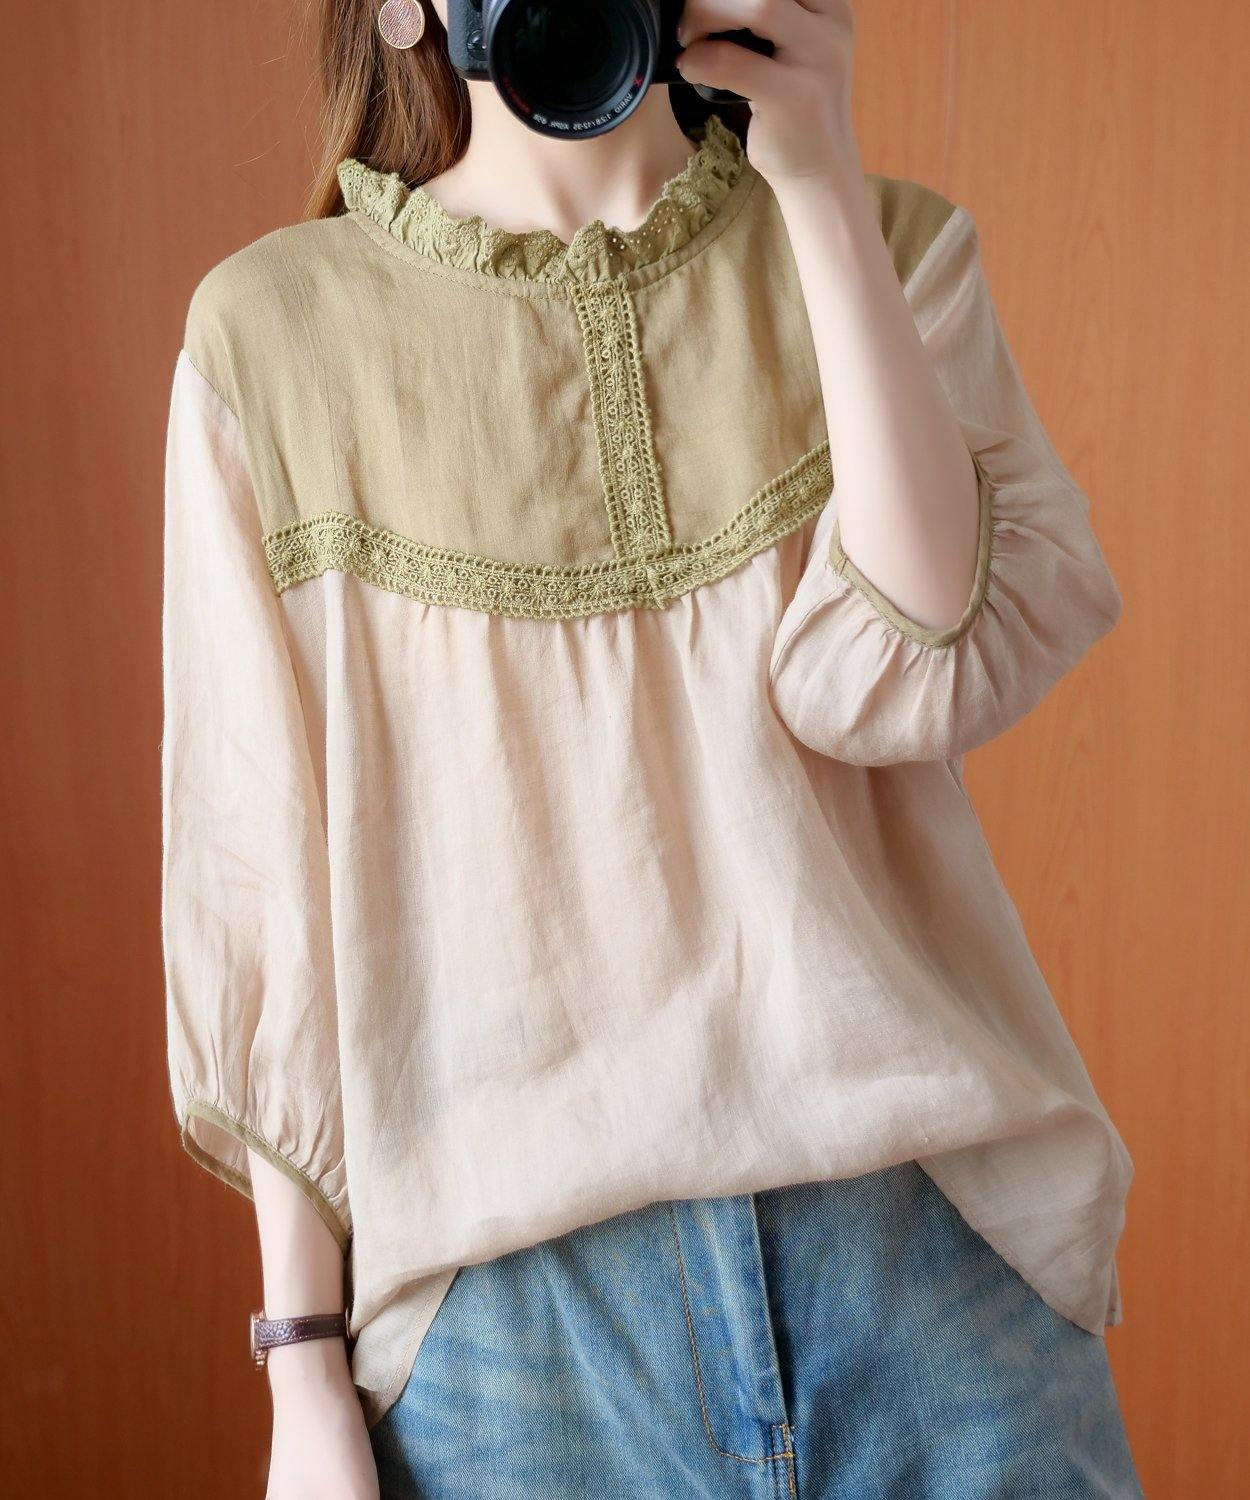 Handmade Peter pan Collar patchwork lace clothes For Women nude blouses